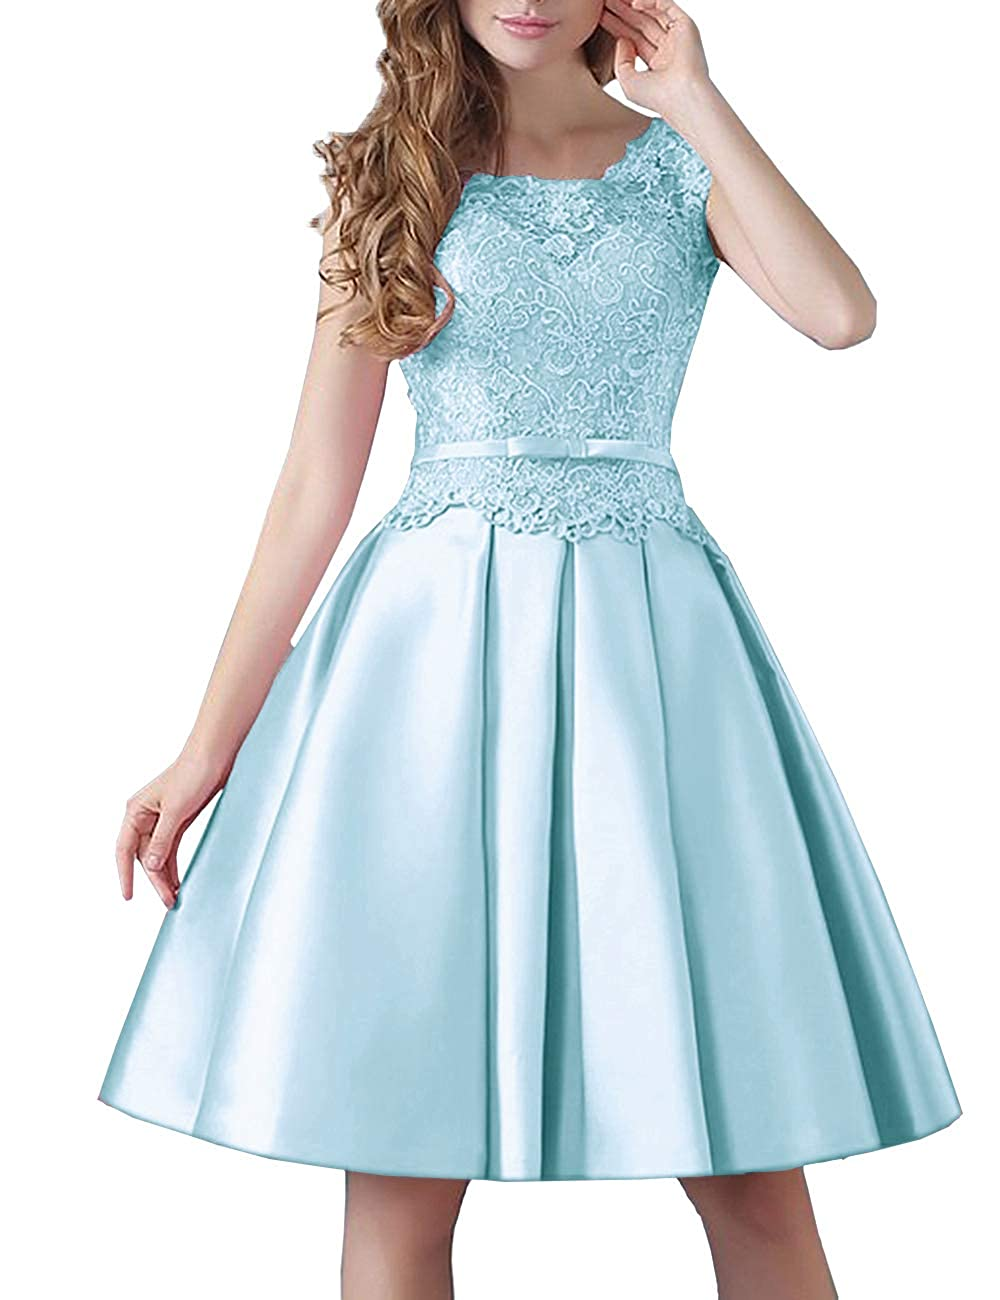 Ice bluee Uther Prom KneeLength Lace Cocktail Dress Short Stain Homecoming Dresses for Girls